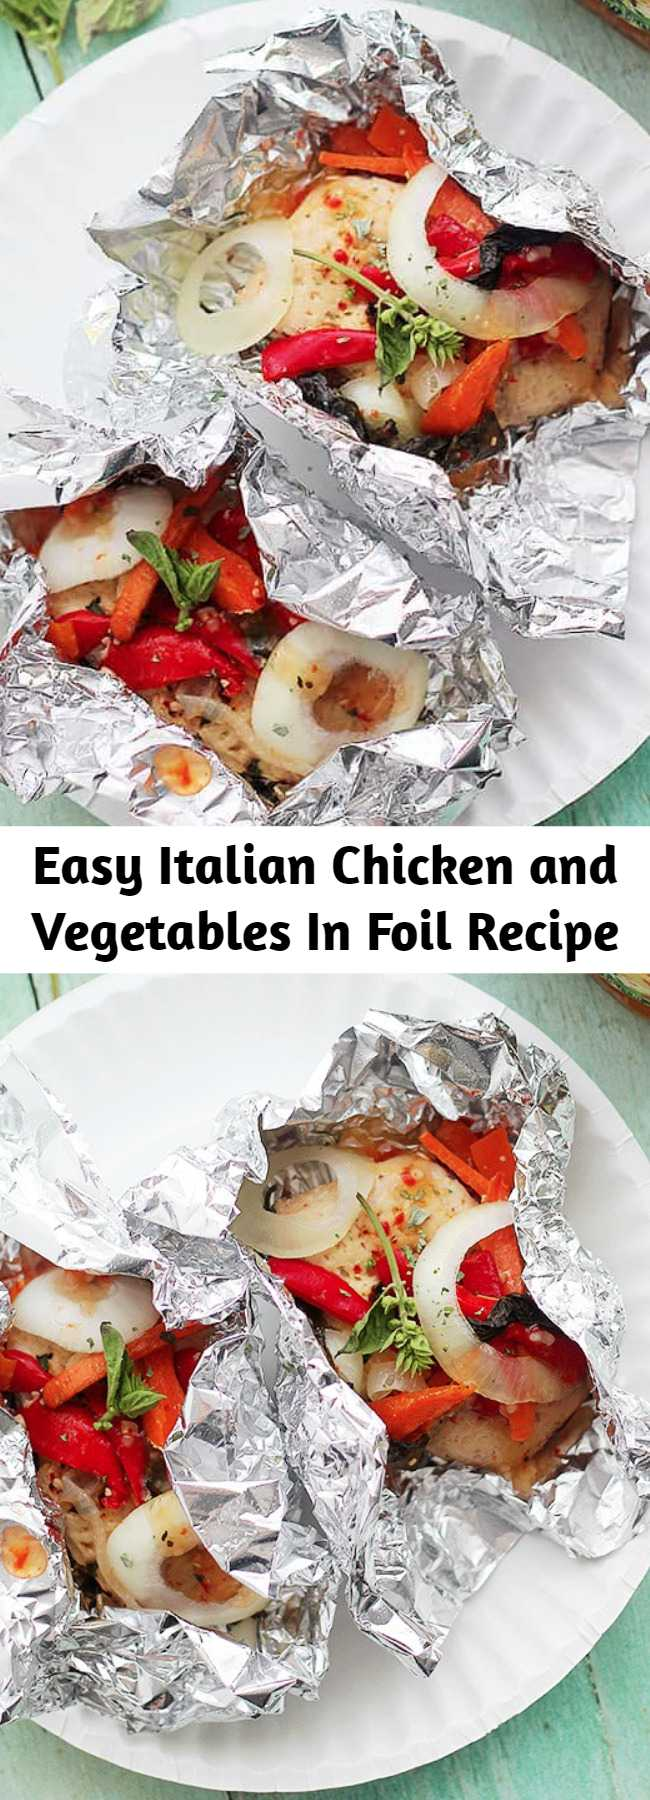 Easy Italian Chicken and Vegetables In Foil Recipe - Italian Chicken and Vegetables In Foil is such an easy & delicious chicken recipe! Flavorful, incredibly moist chicken breasts baked in aluminum foil with peppers, onion, garlic, fresh herbs and Italian Dressing. #chickenbreasts #foildinner